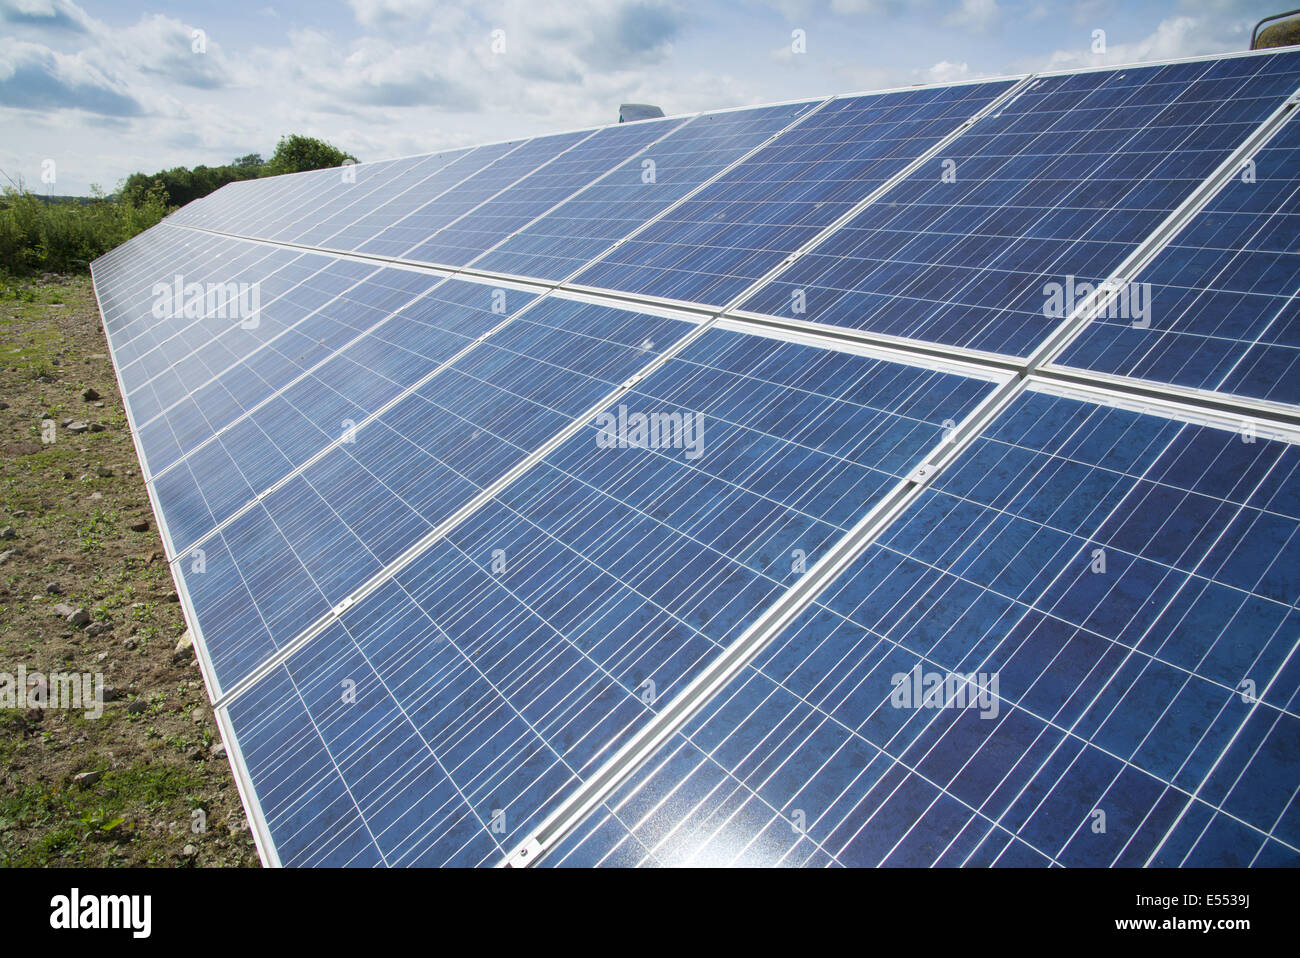 Solar panels used to generate electricity for pig farm, Driffield, East Yorkshire, England, June - Stock Image